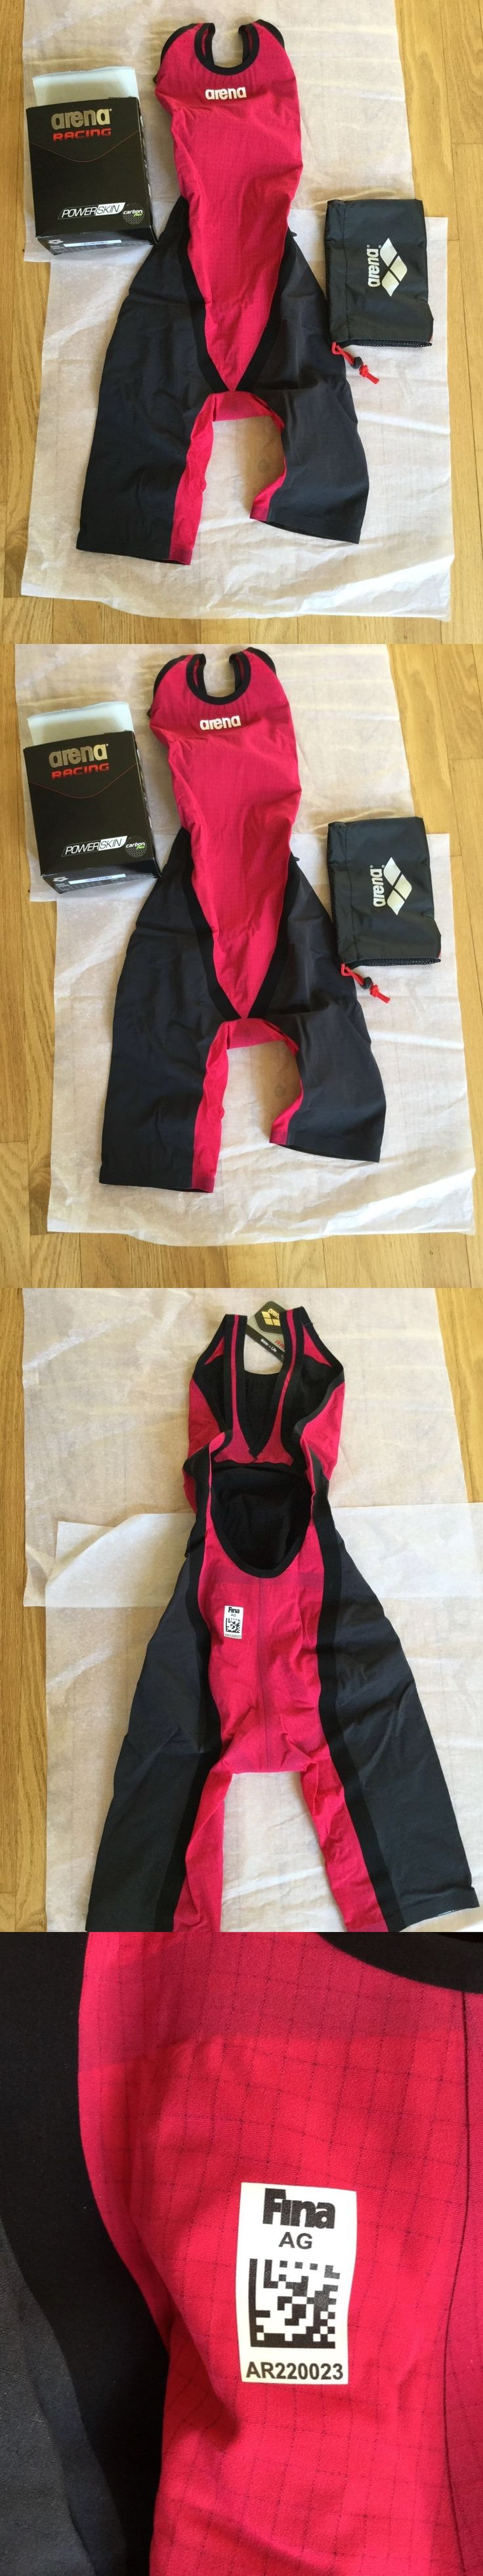 Youth 140037: Nwt Wmns Arena Powerskin Carbon Flex Swimsuit Tech Suit Open Back Size 30 -> BUY IT NOW ONLY: $249.95 on eBay!